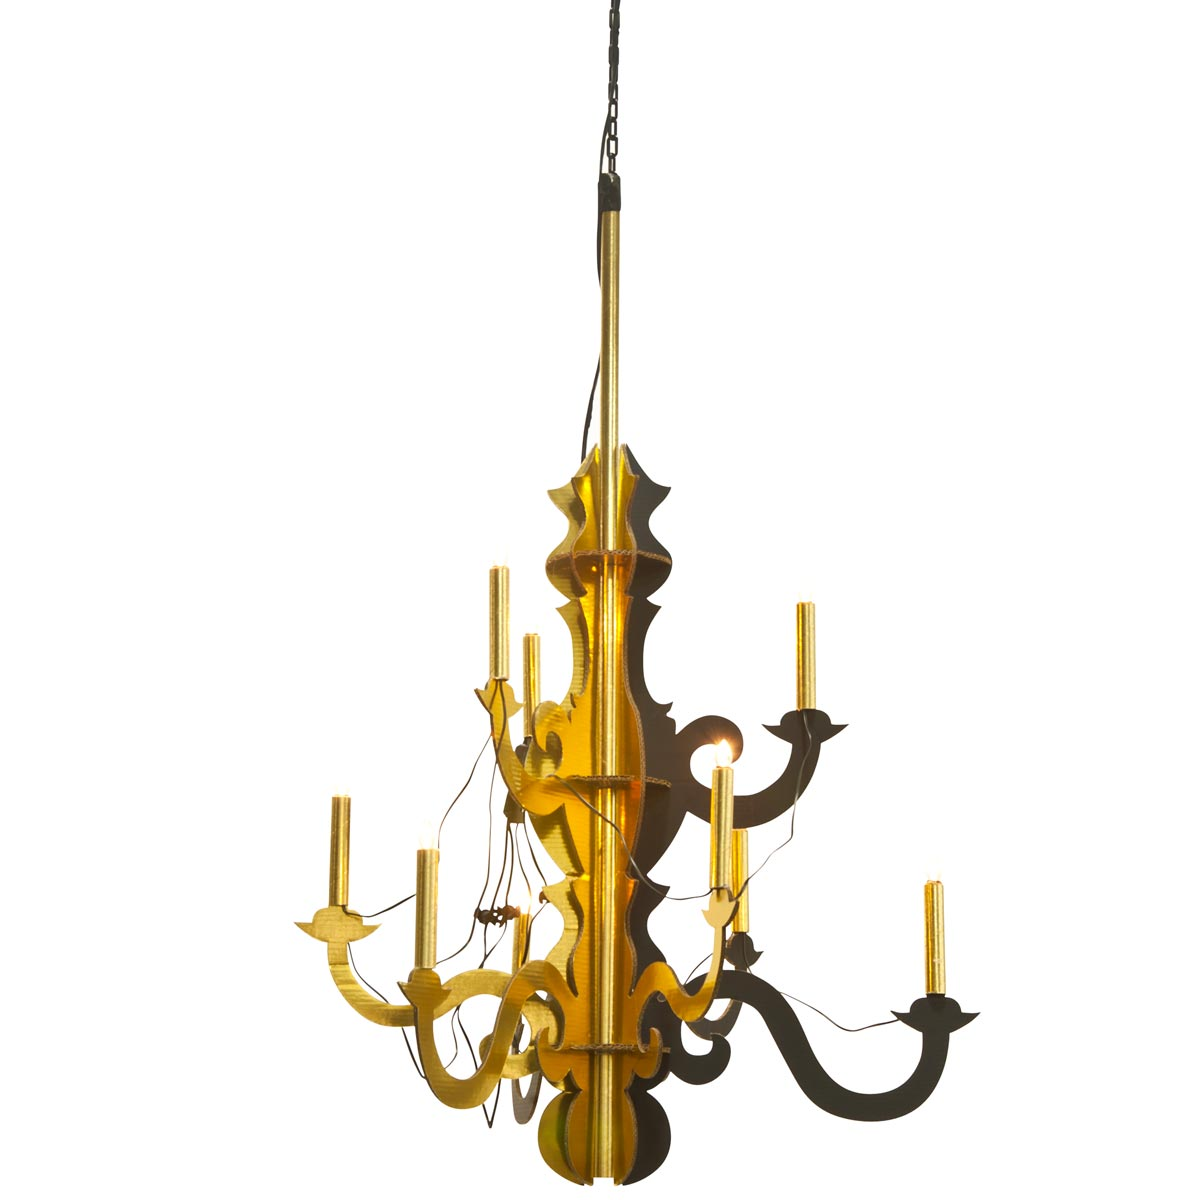 Fantasy's Flame Chandelier Kit